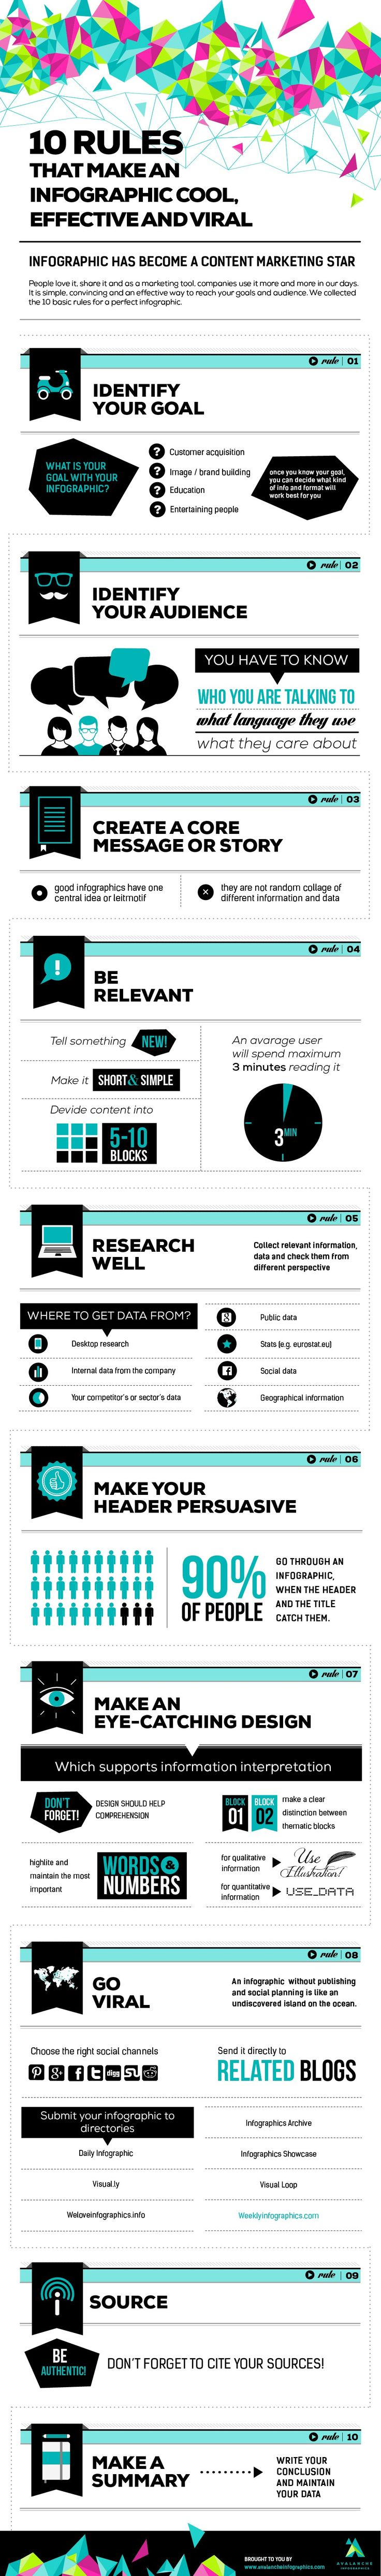 10 rules that make an infographic effective (infographic) via makeuseof.com